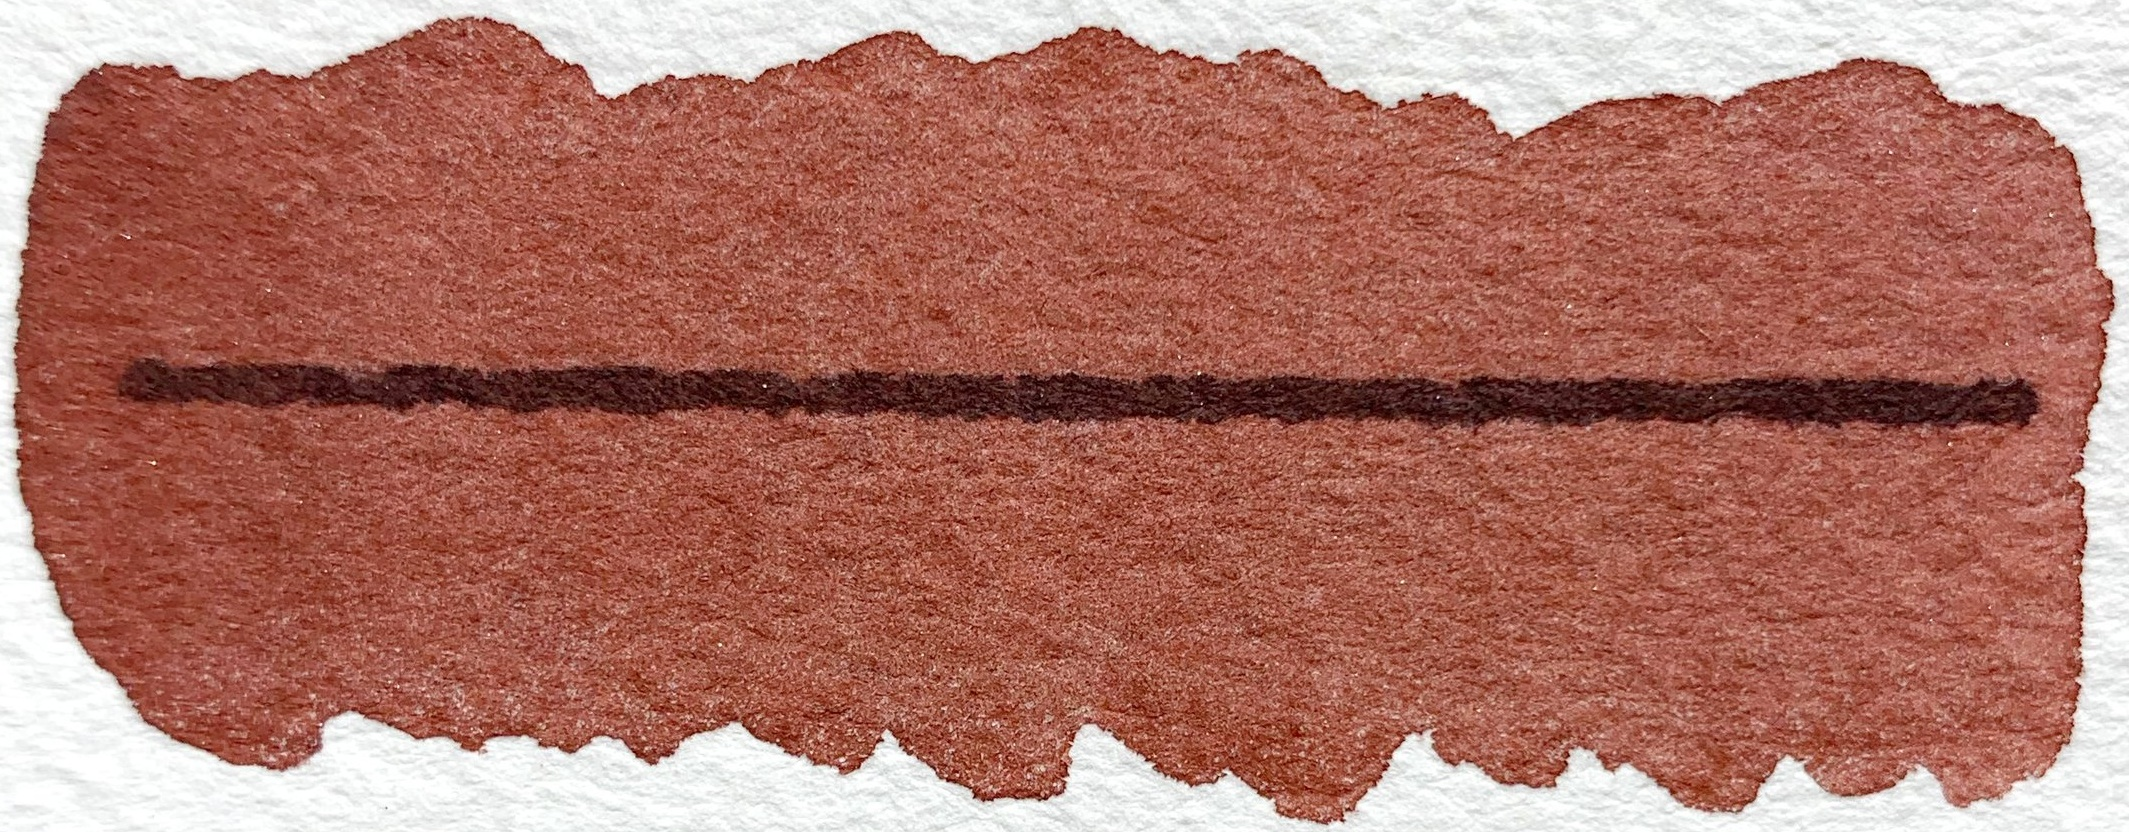 Riverbed Mud - PR101, opaque, excellent lightfastness, staining